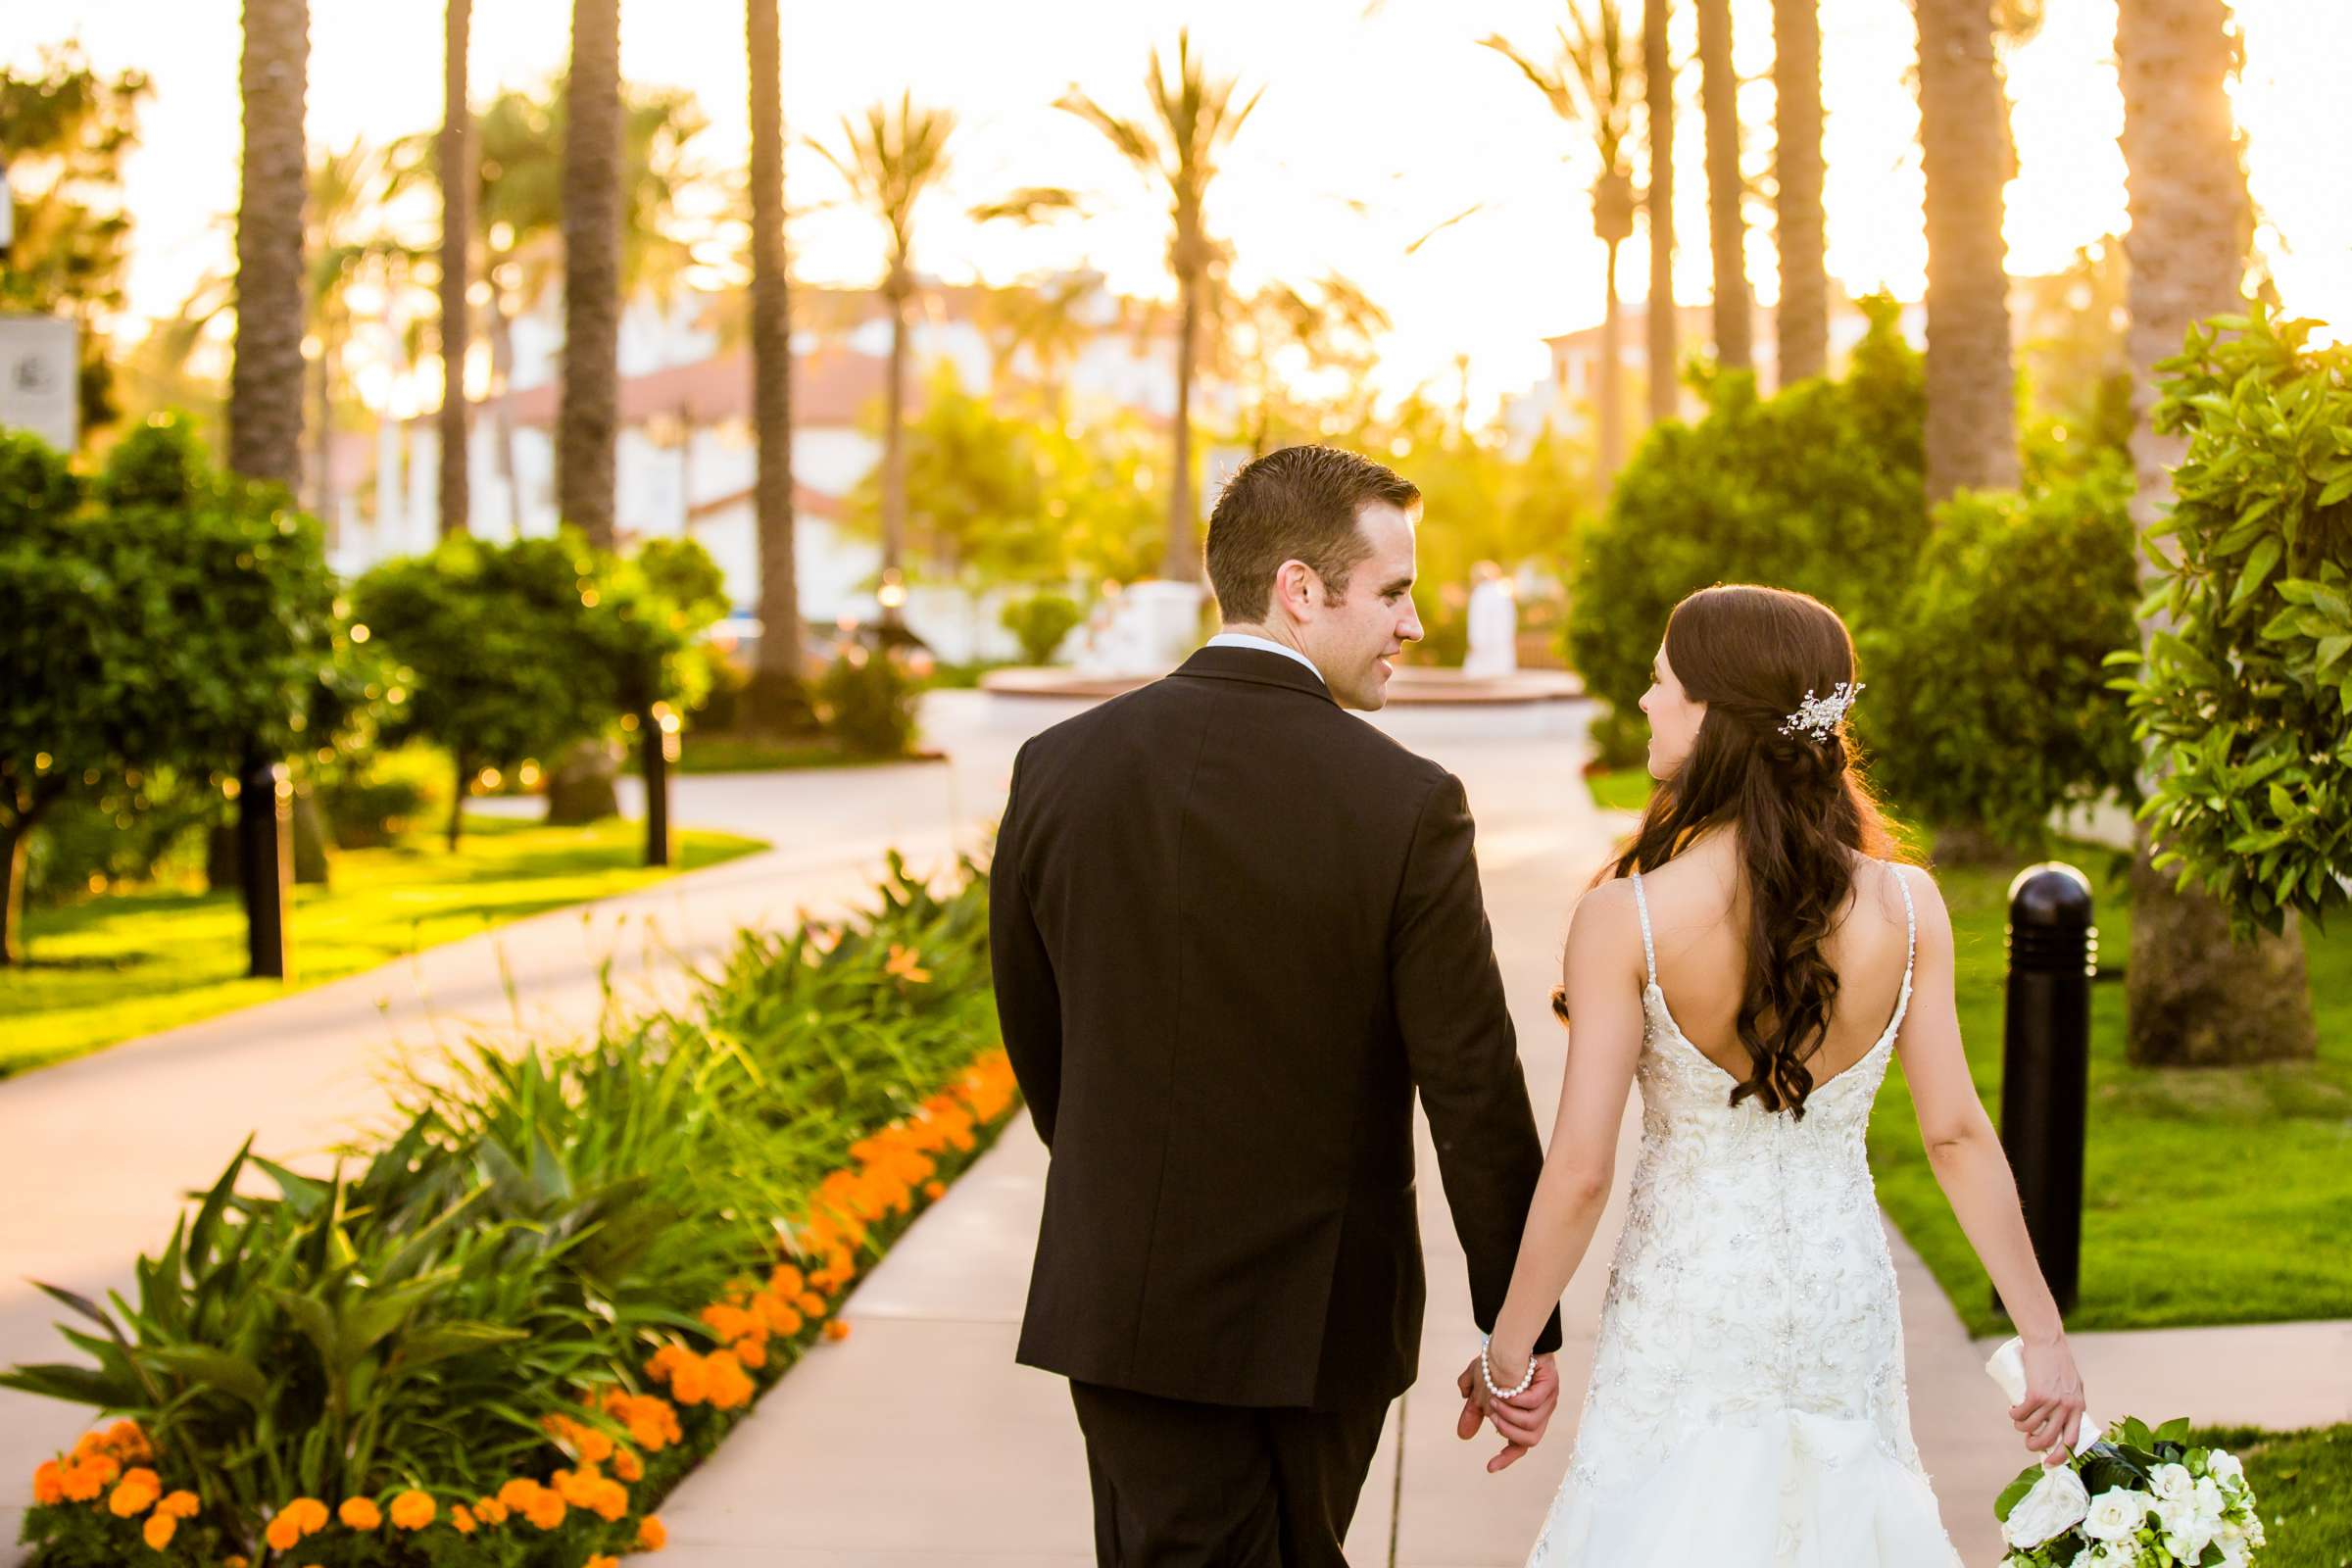 Omni La Costa Resort & Spa Wedding coordinated by EverAfter Events, Natalie and Greg Wedding Photo #359385 by True Photography